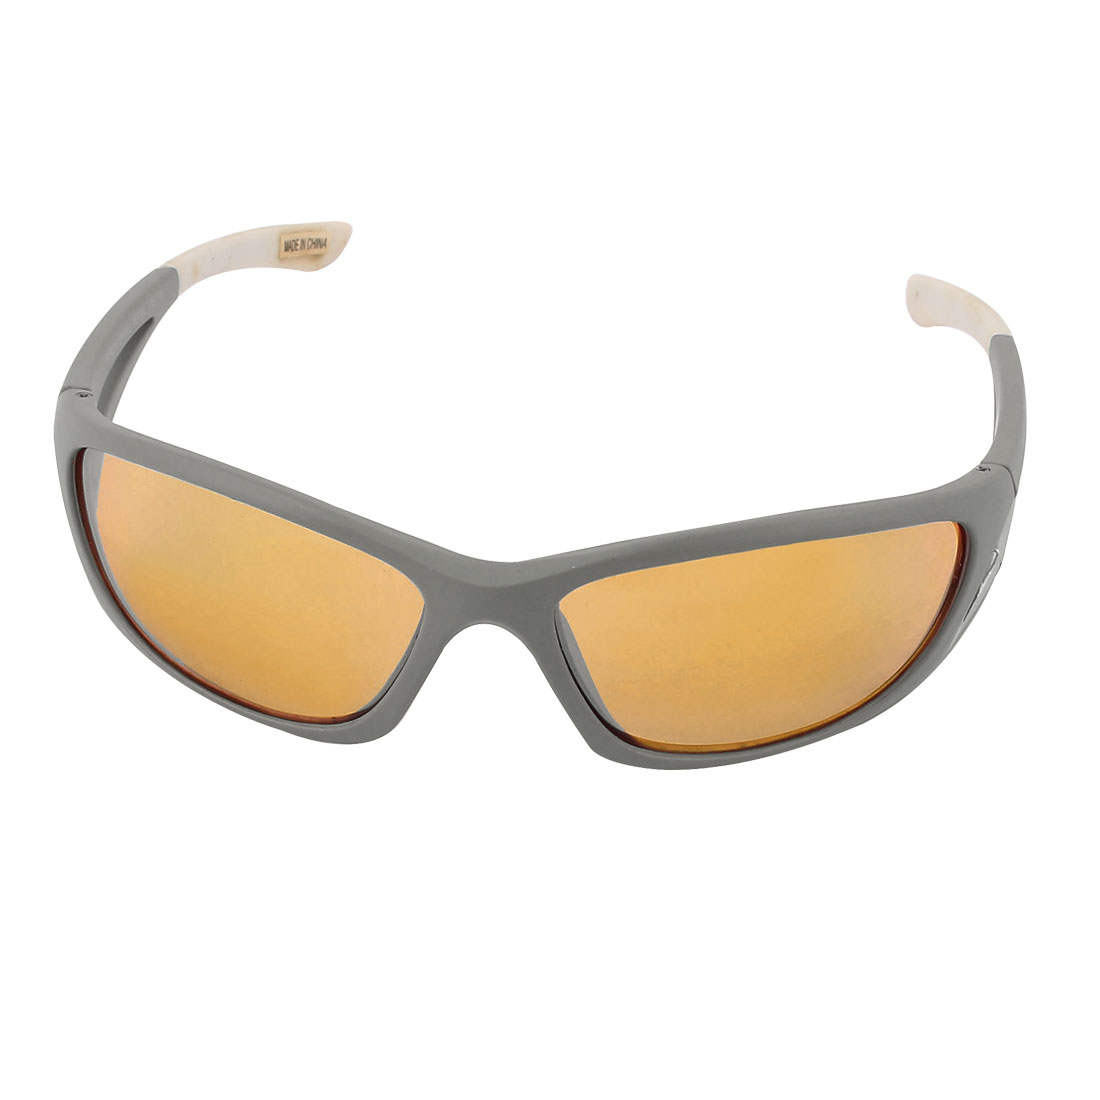 Men Women Unisex Outdoor Eyewear Mirror Lens Sunglasses Glasses